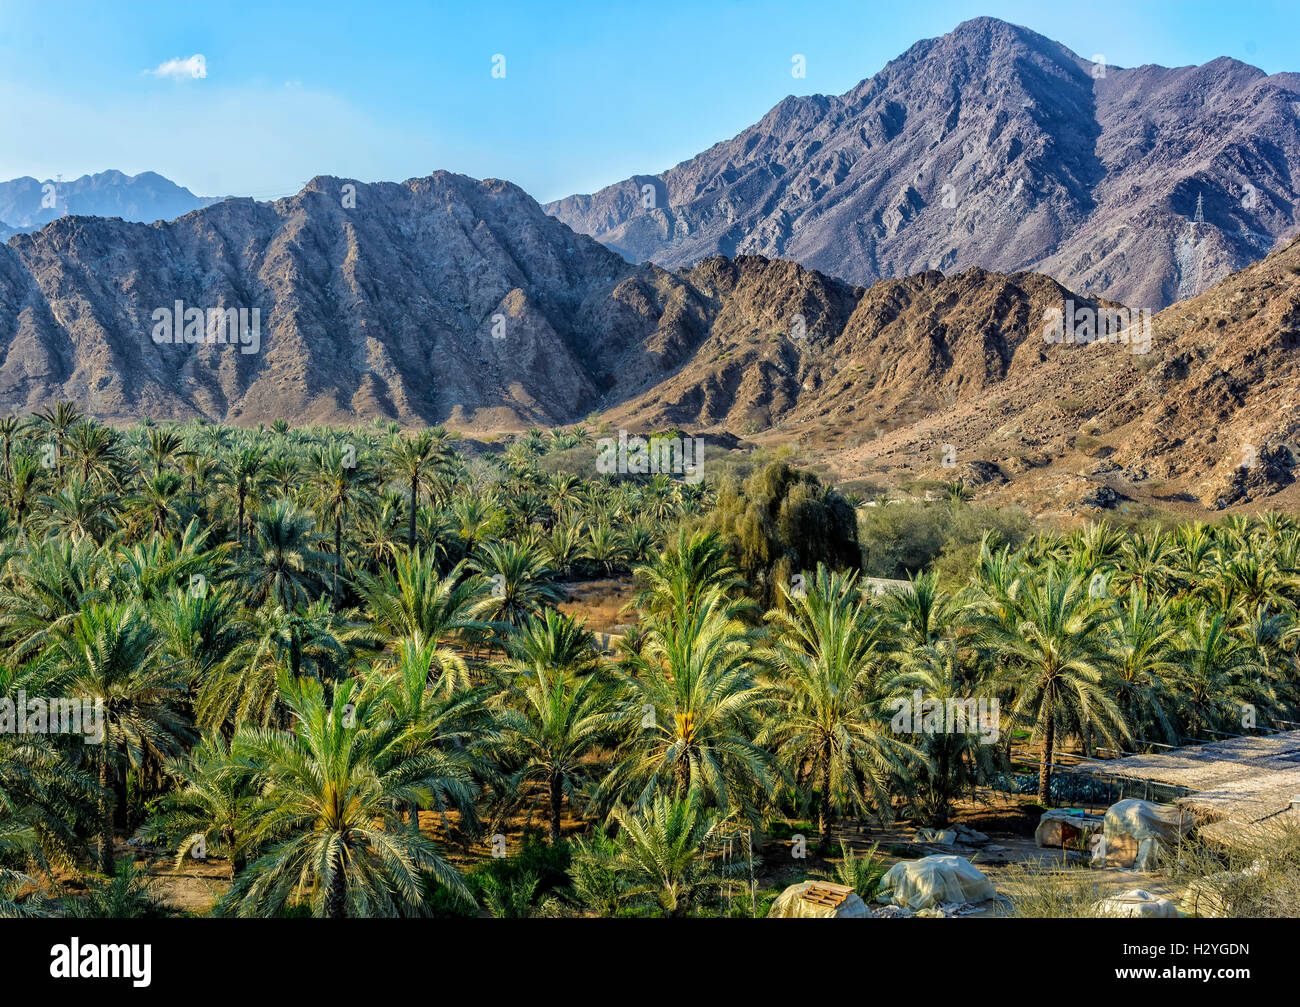 Oasis with palm trees in the Hajar Mountains, Fujairah, United Arab Emirates - Stock Image